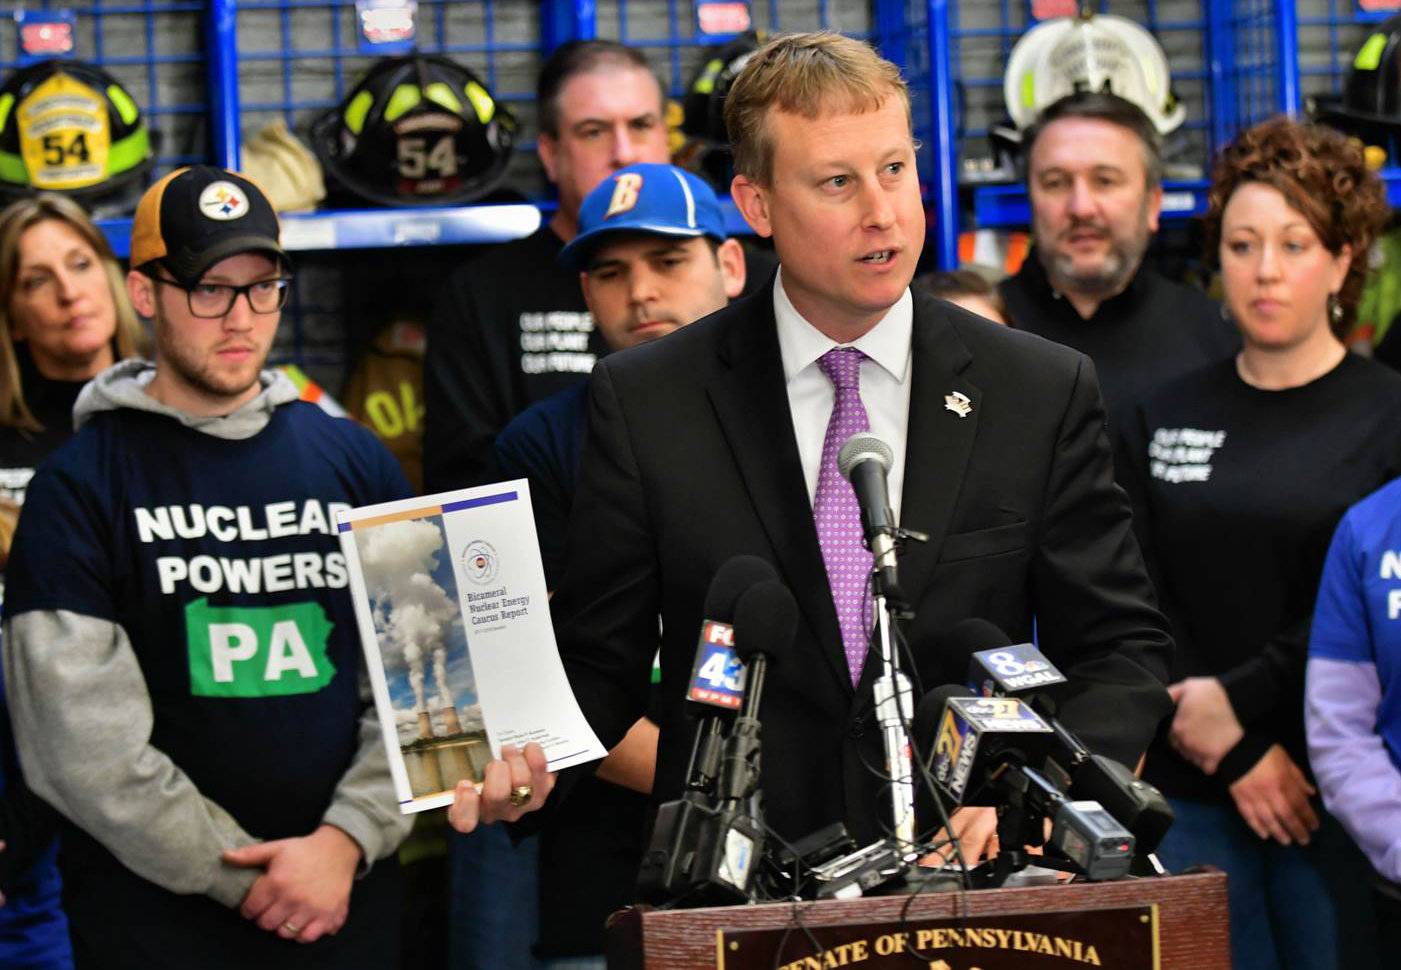 Sen. Ryan P. Aument, a Republican from Landisville and co-chairman of the Pennsylvania Nuclear Energy Caucus, speaks Thursday at the Londonderry Township fire hall about how state goverment can act to prevent the premature closings of the Three Mile Island and Beaver Valley nuclear power plants